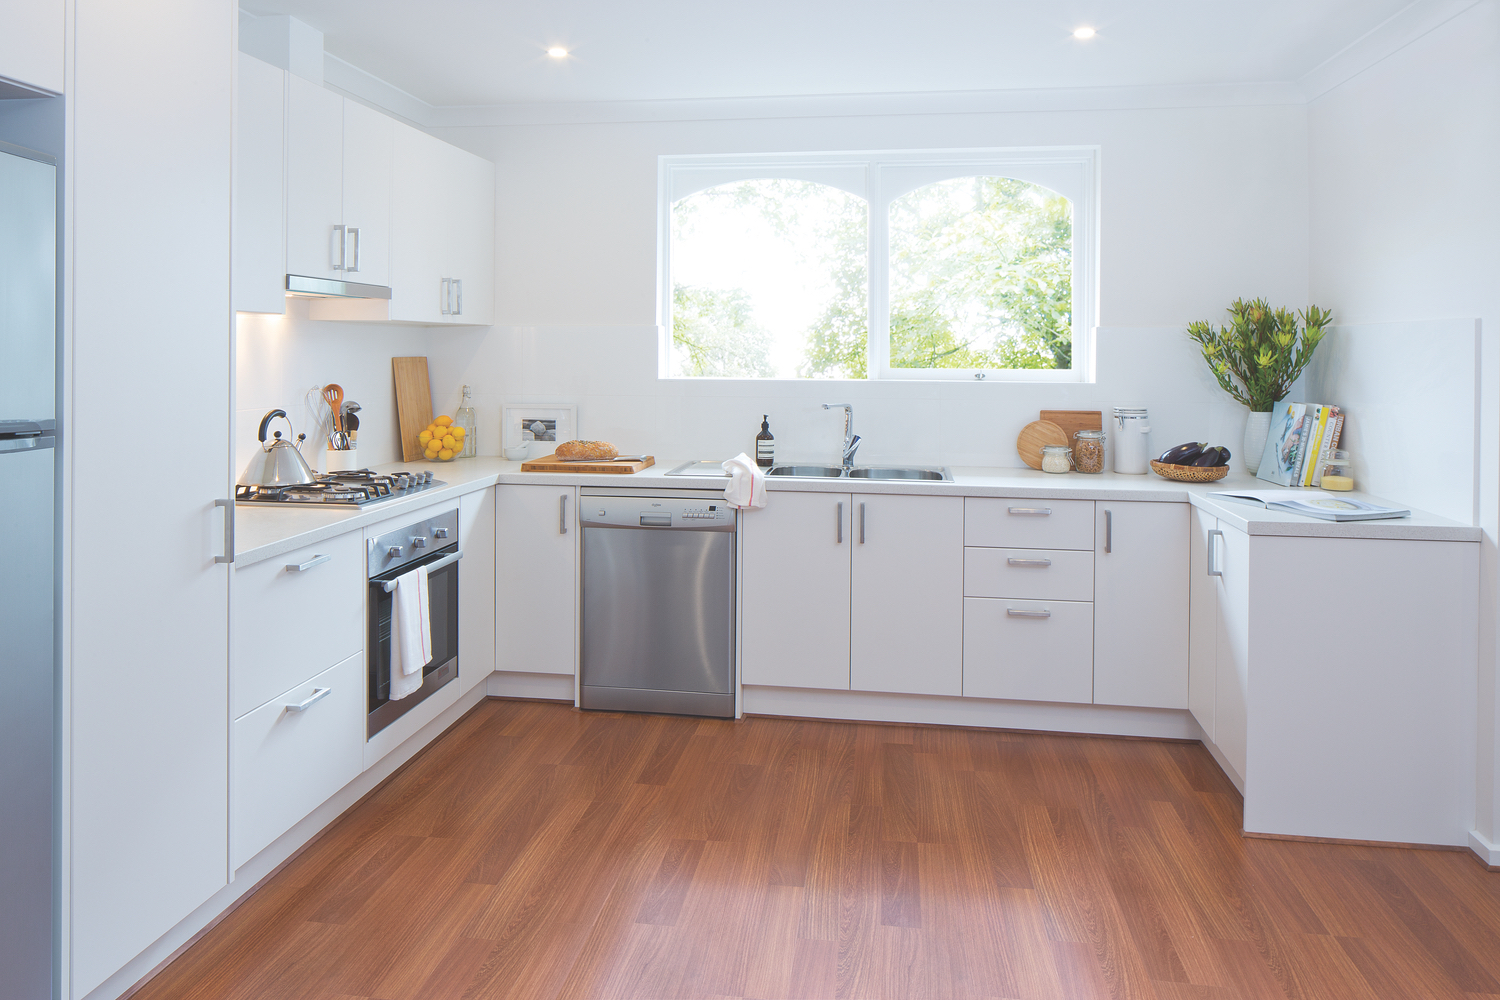 Flat Pack Kitchen Cupboards Breathing New Life Kitchen Inspiration And Ideas